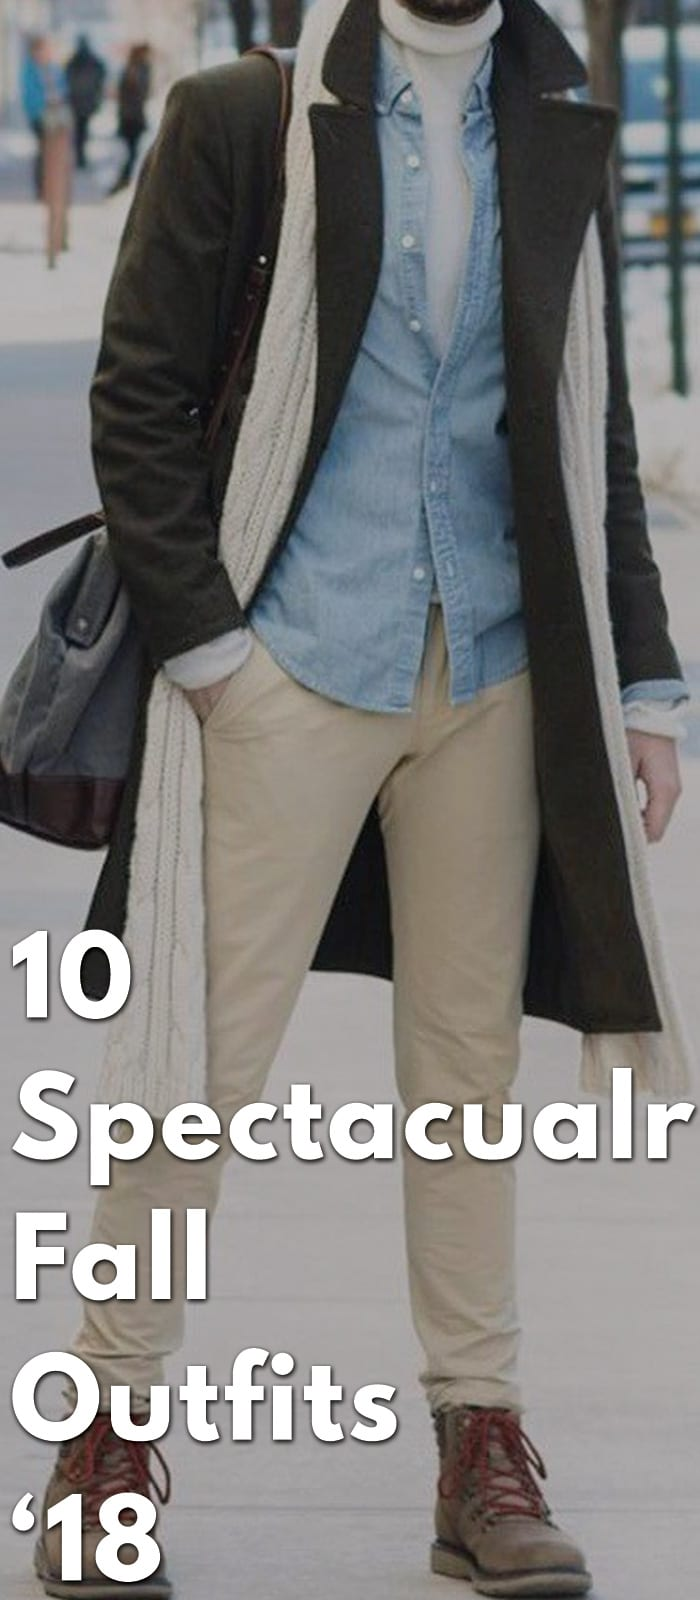 10-Spectacualr-Fall-Outfits-'18